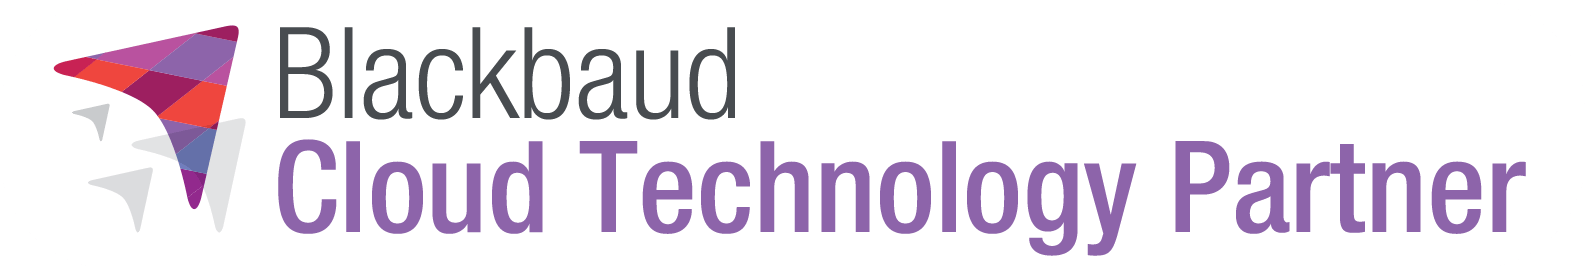 blackbaud-cloud-technology-partner-logo-rounded-min